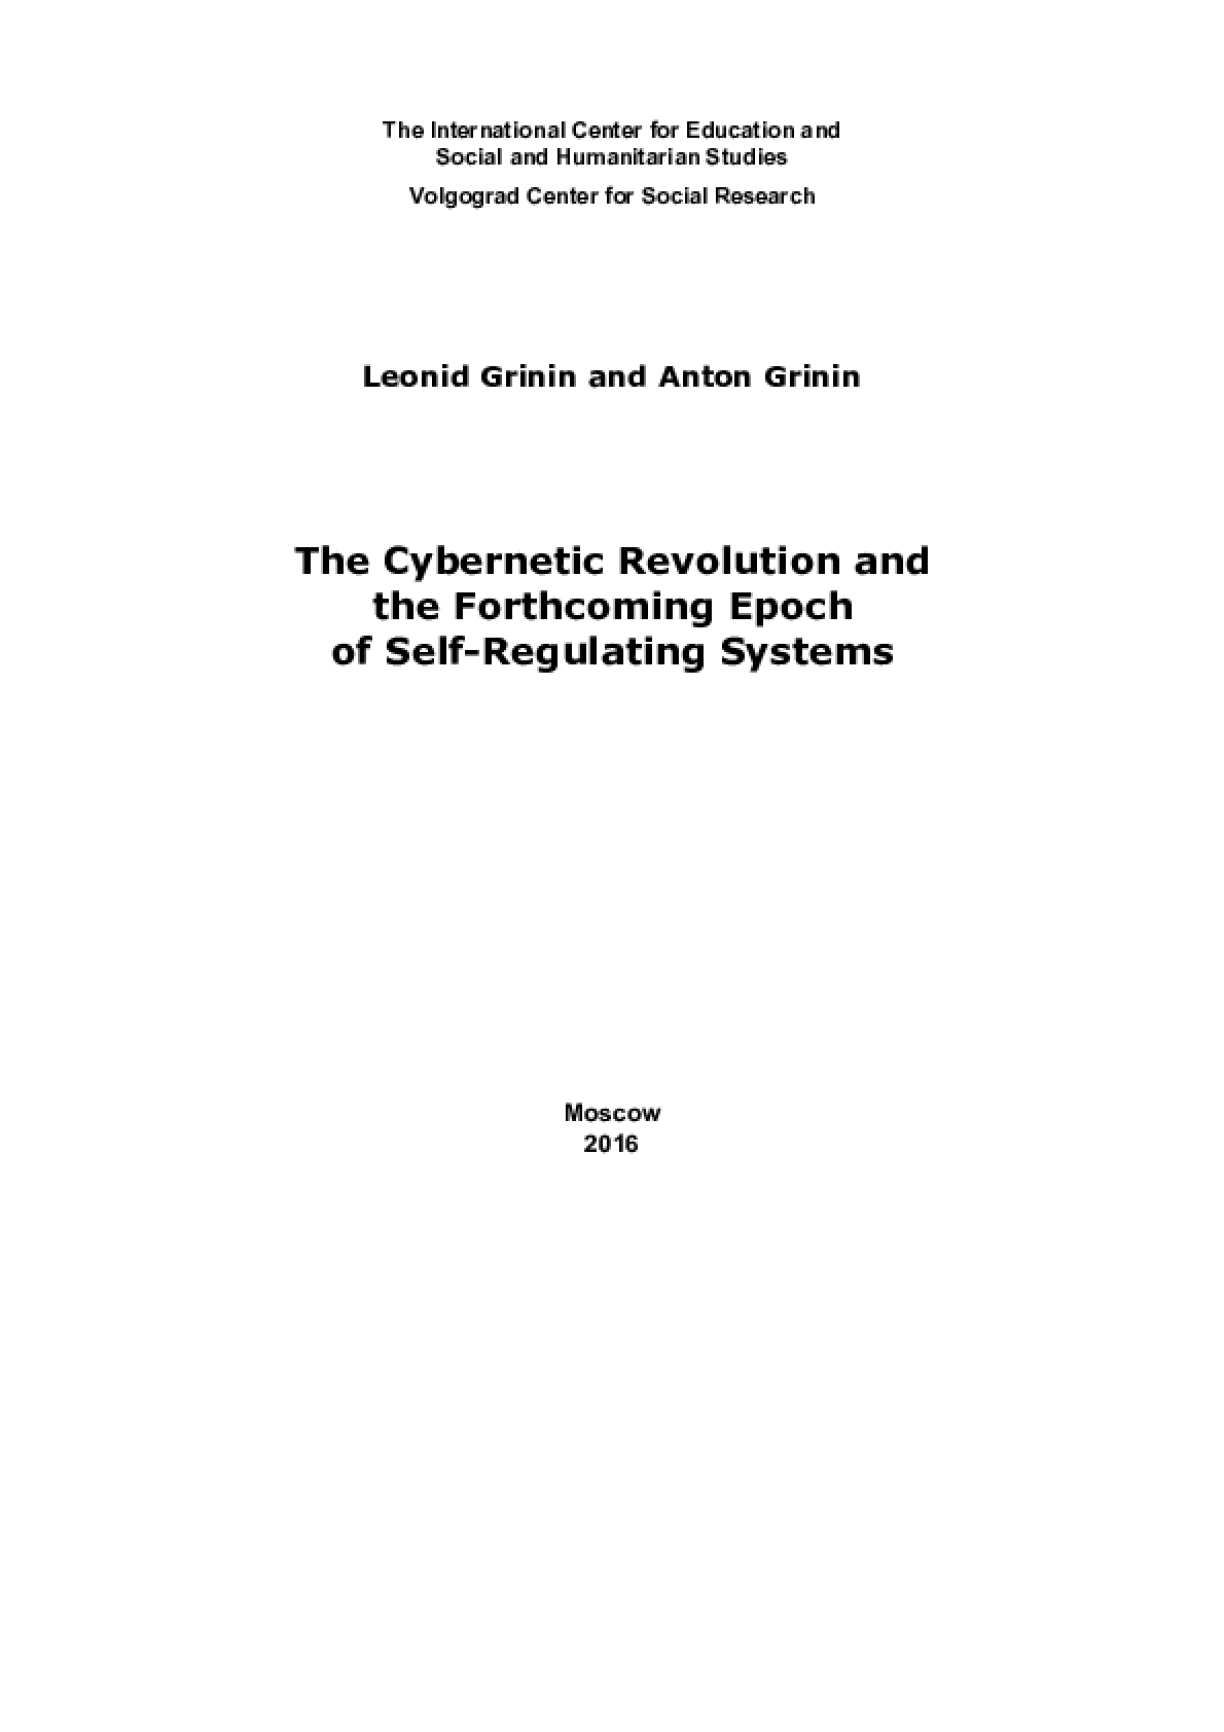 The Cybernetic Revolution and the Forthcoming Epoch of Self-Regulating Systems.